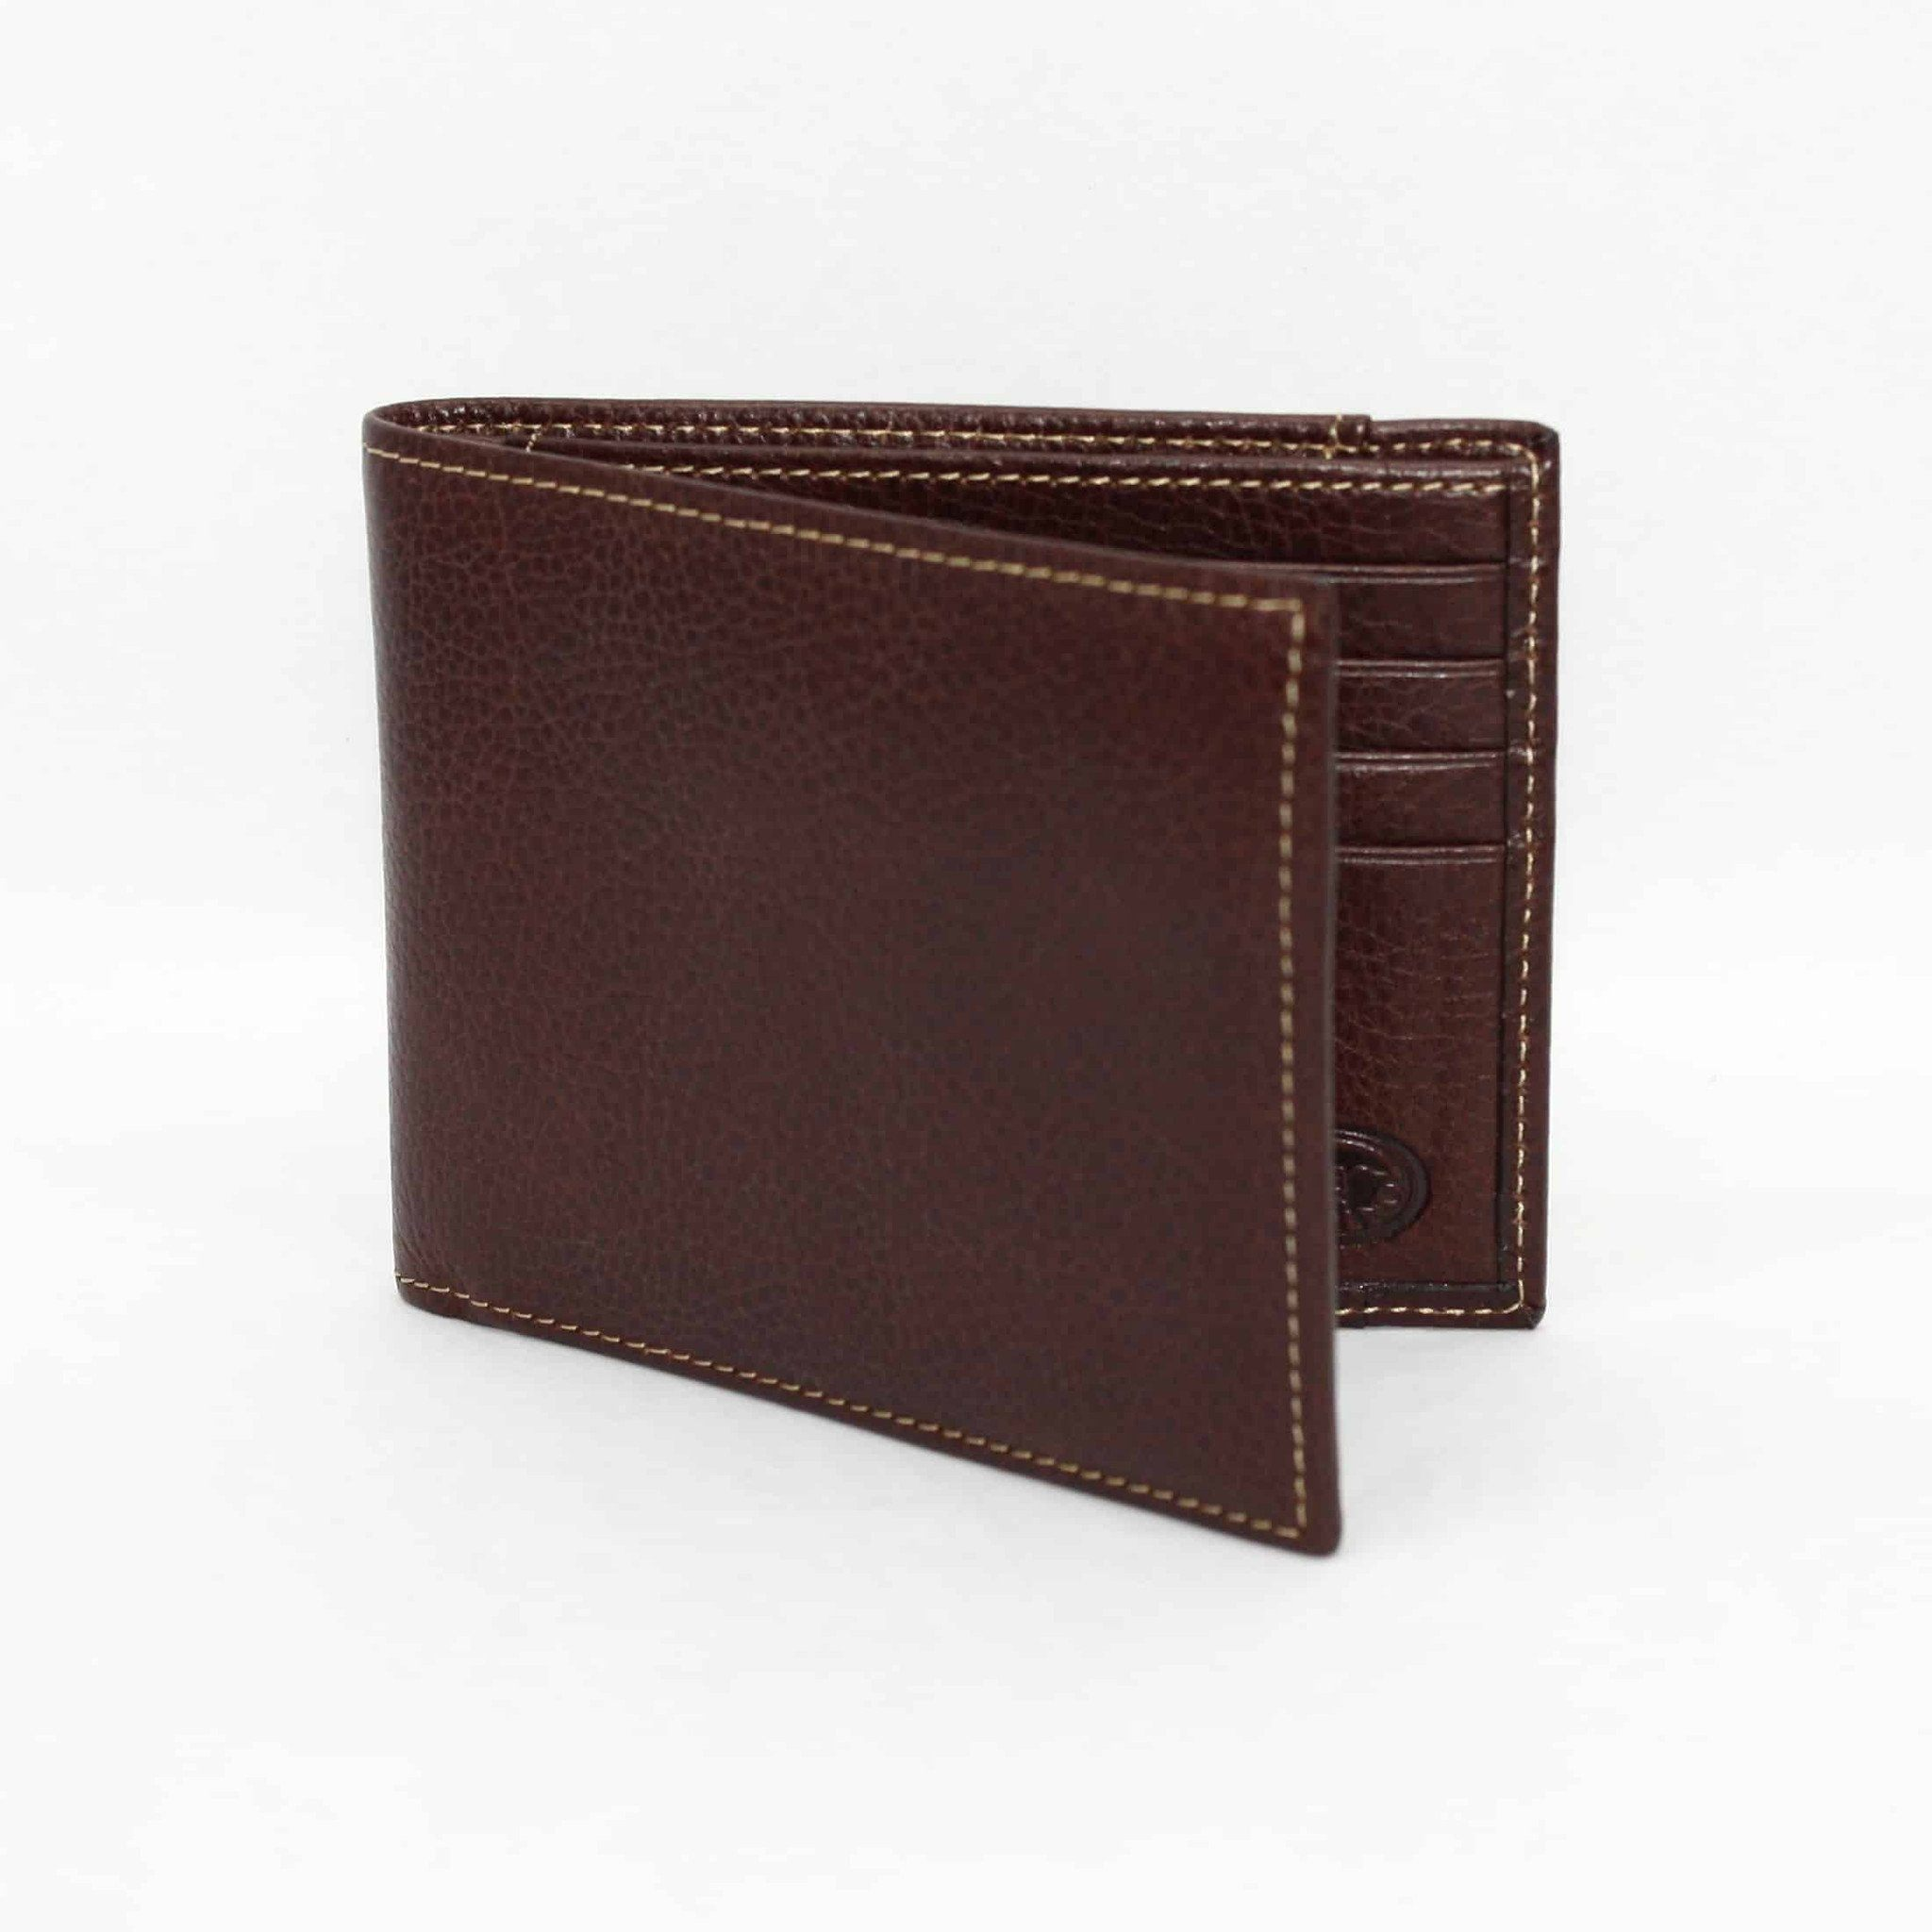 Tumbled Glove Leather Billfold Wallet - Brown,WALLETS,GentRow.com, | GentRow.com